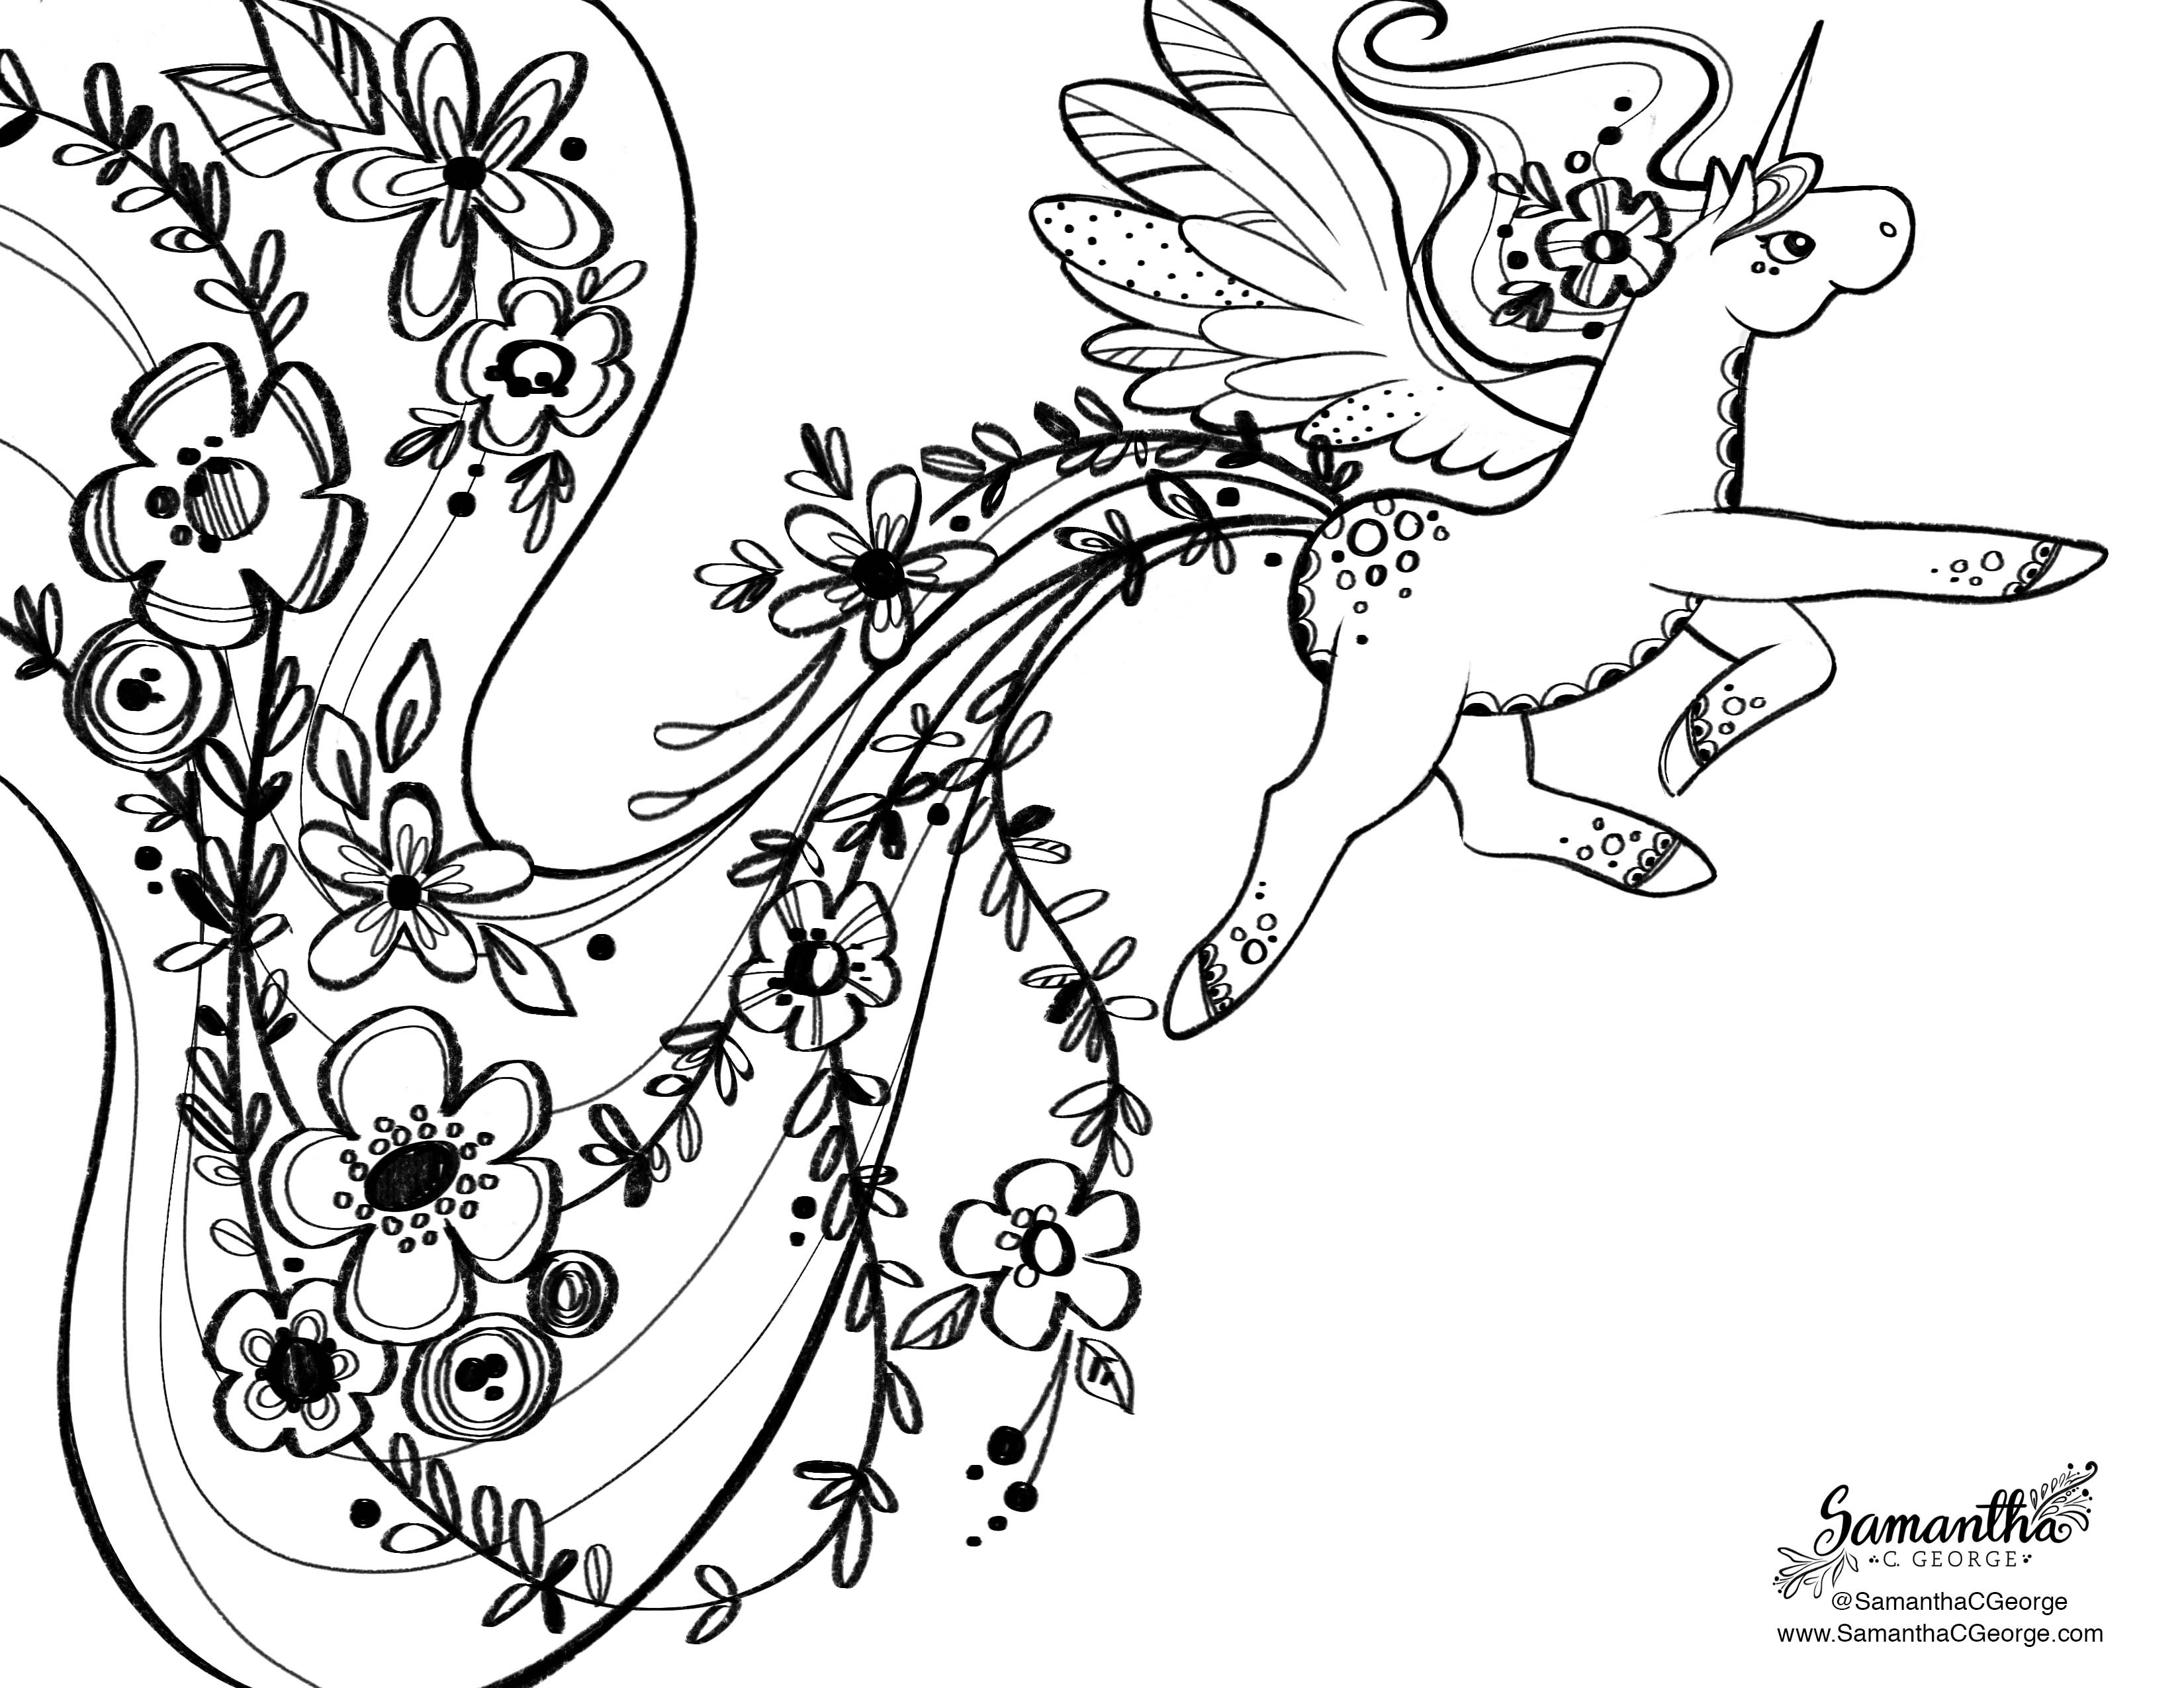 free coloring pages samantha george